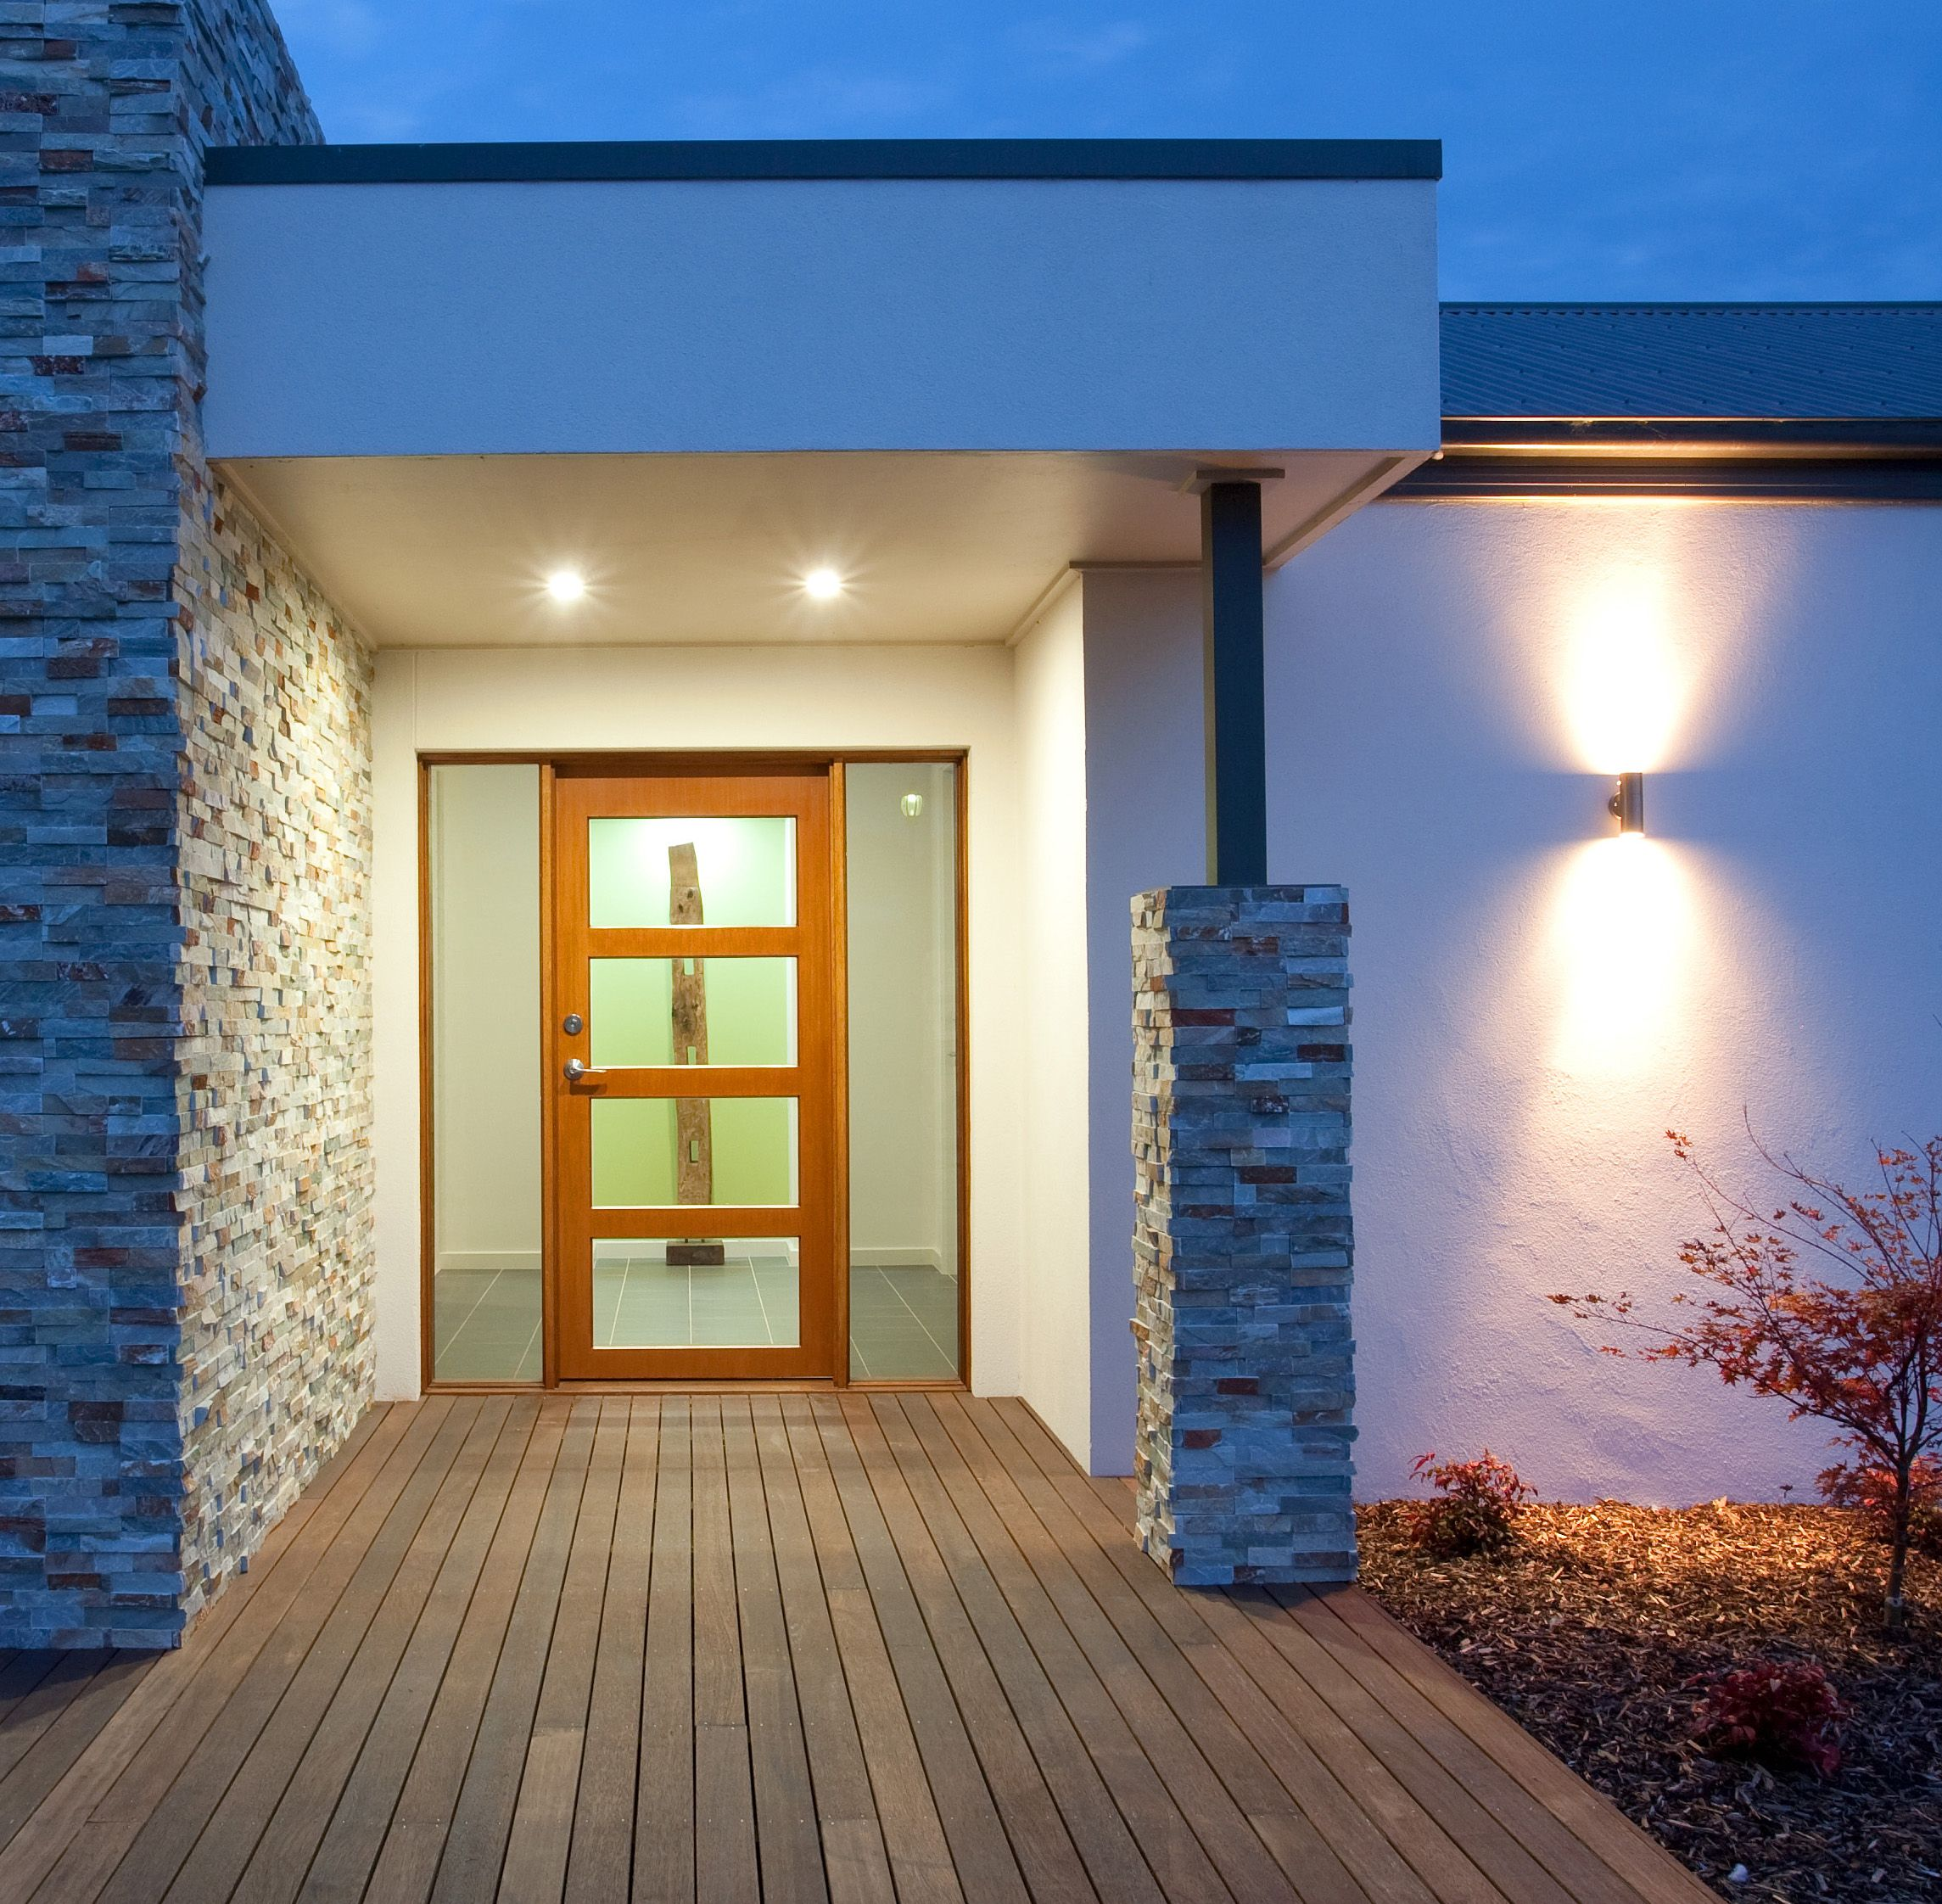 Outdoor Lighting Ideas And Options: External Lighting Options For The Entry Of Your Home